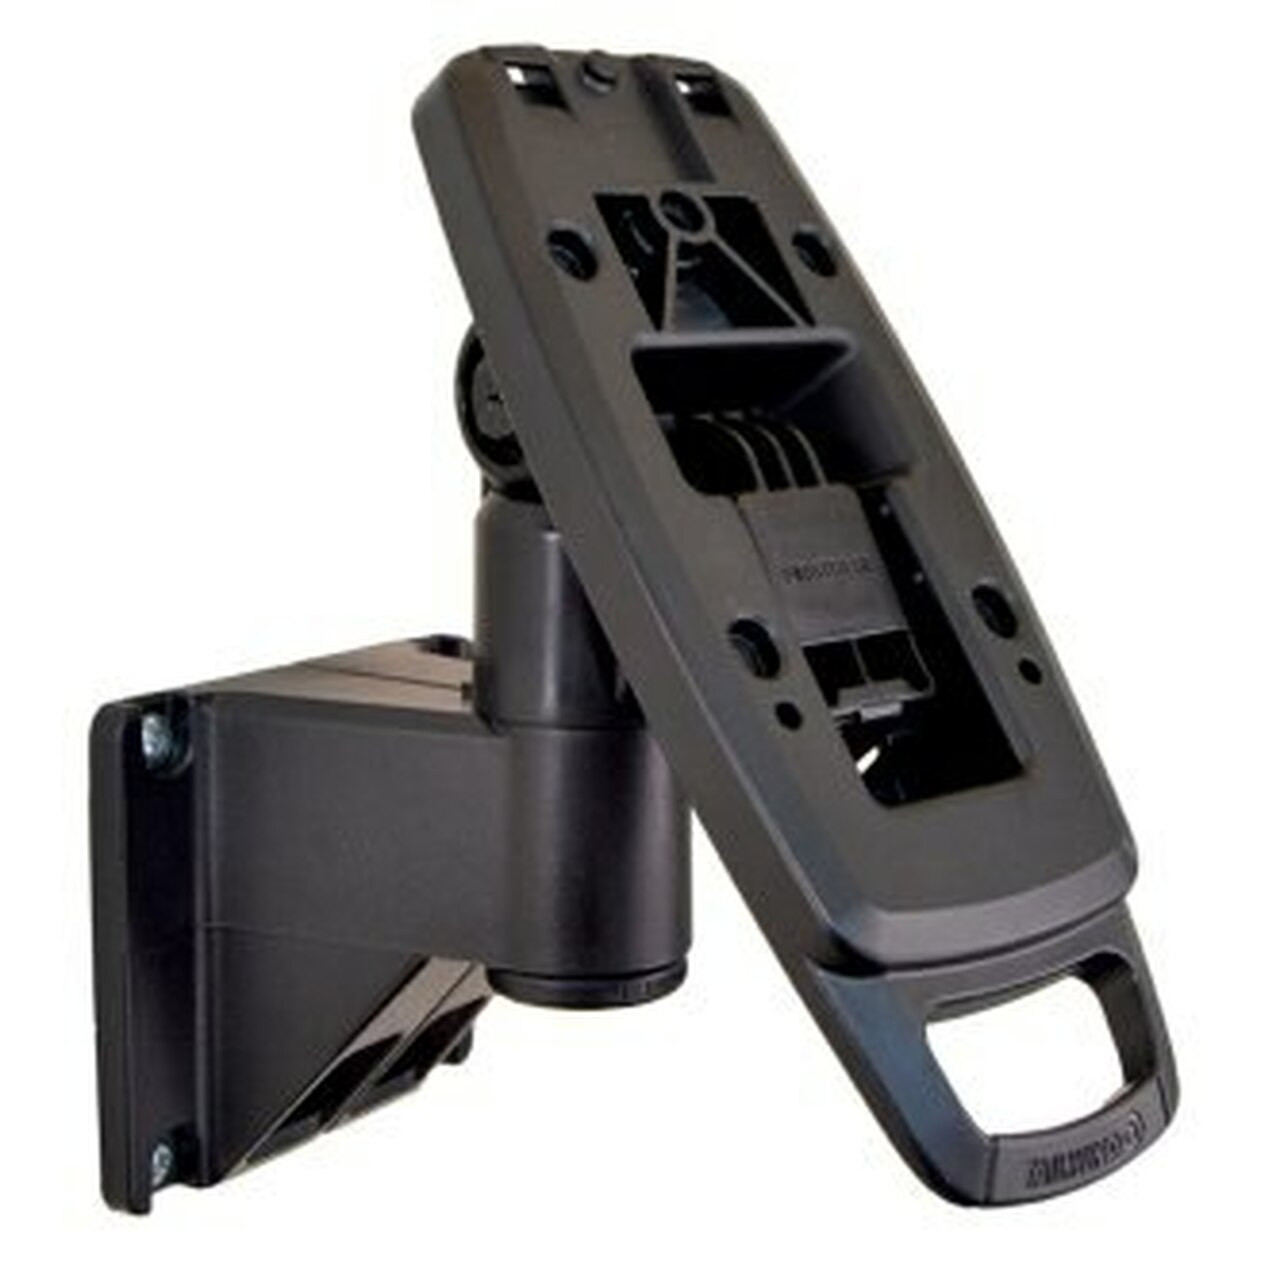 Verifone MX915/925 and M400 Safe Base Contour Wall Mount by Tailwind